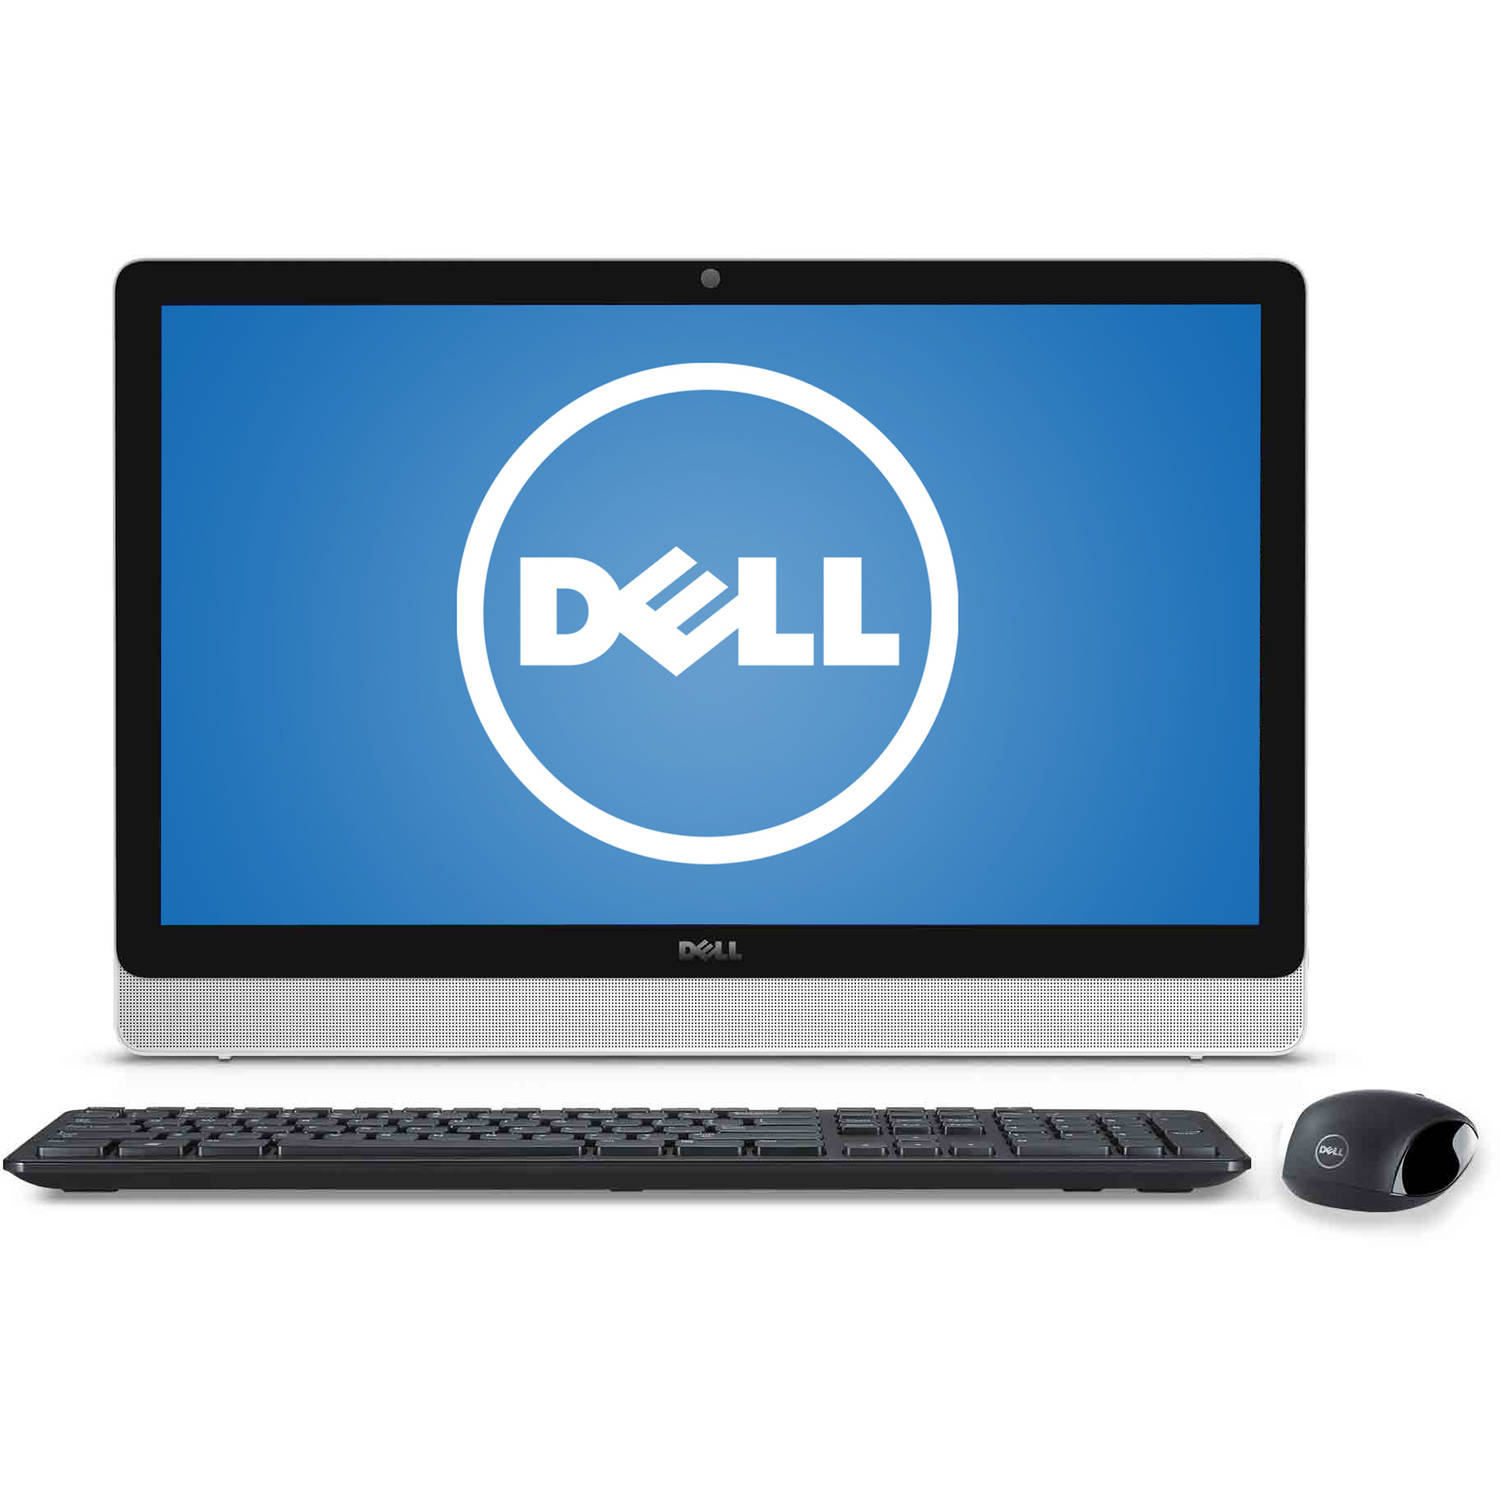 """Dell Silver White Inspiron 3455 All-in-One Desktop PC with AMD Quad-Core A8-7410 Processor, 8GB Memory, 23.8"""" touch... by Dell"""